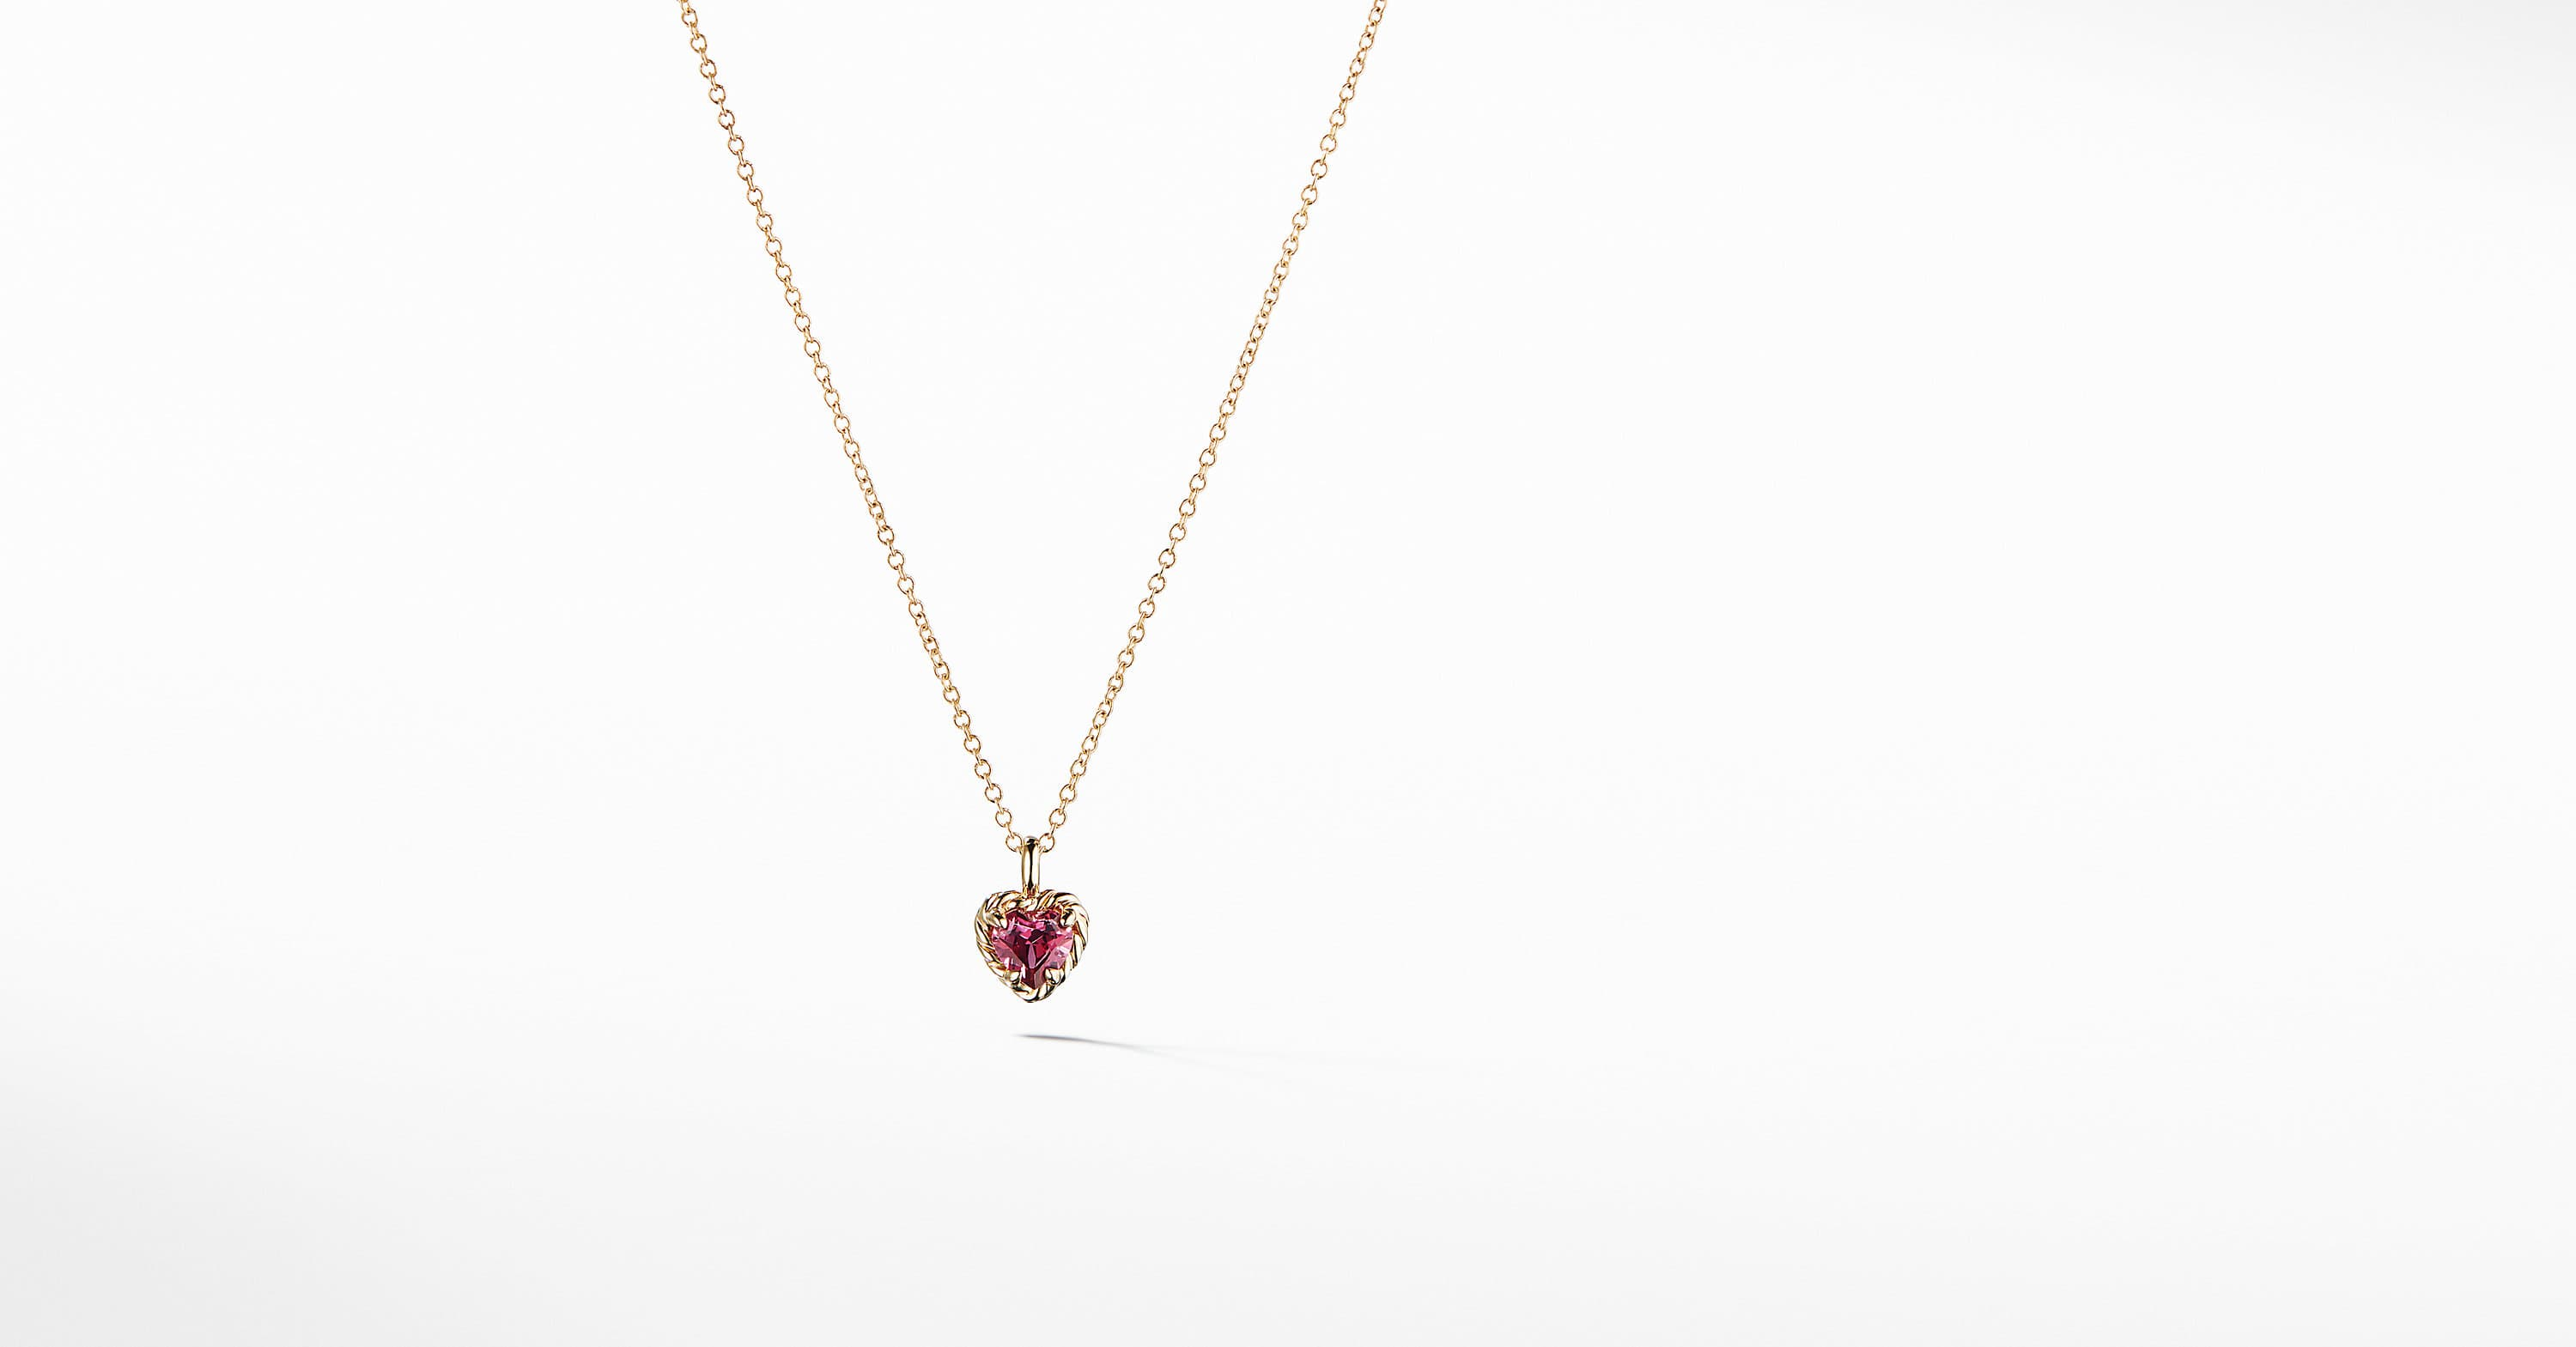 Cable Collectibles Kids Heart Charm Necklace in 18K Gold